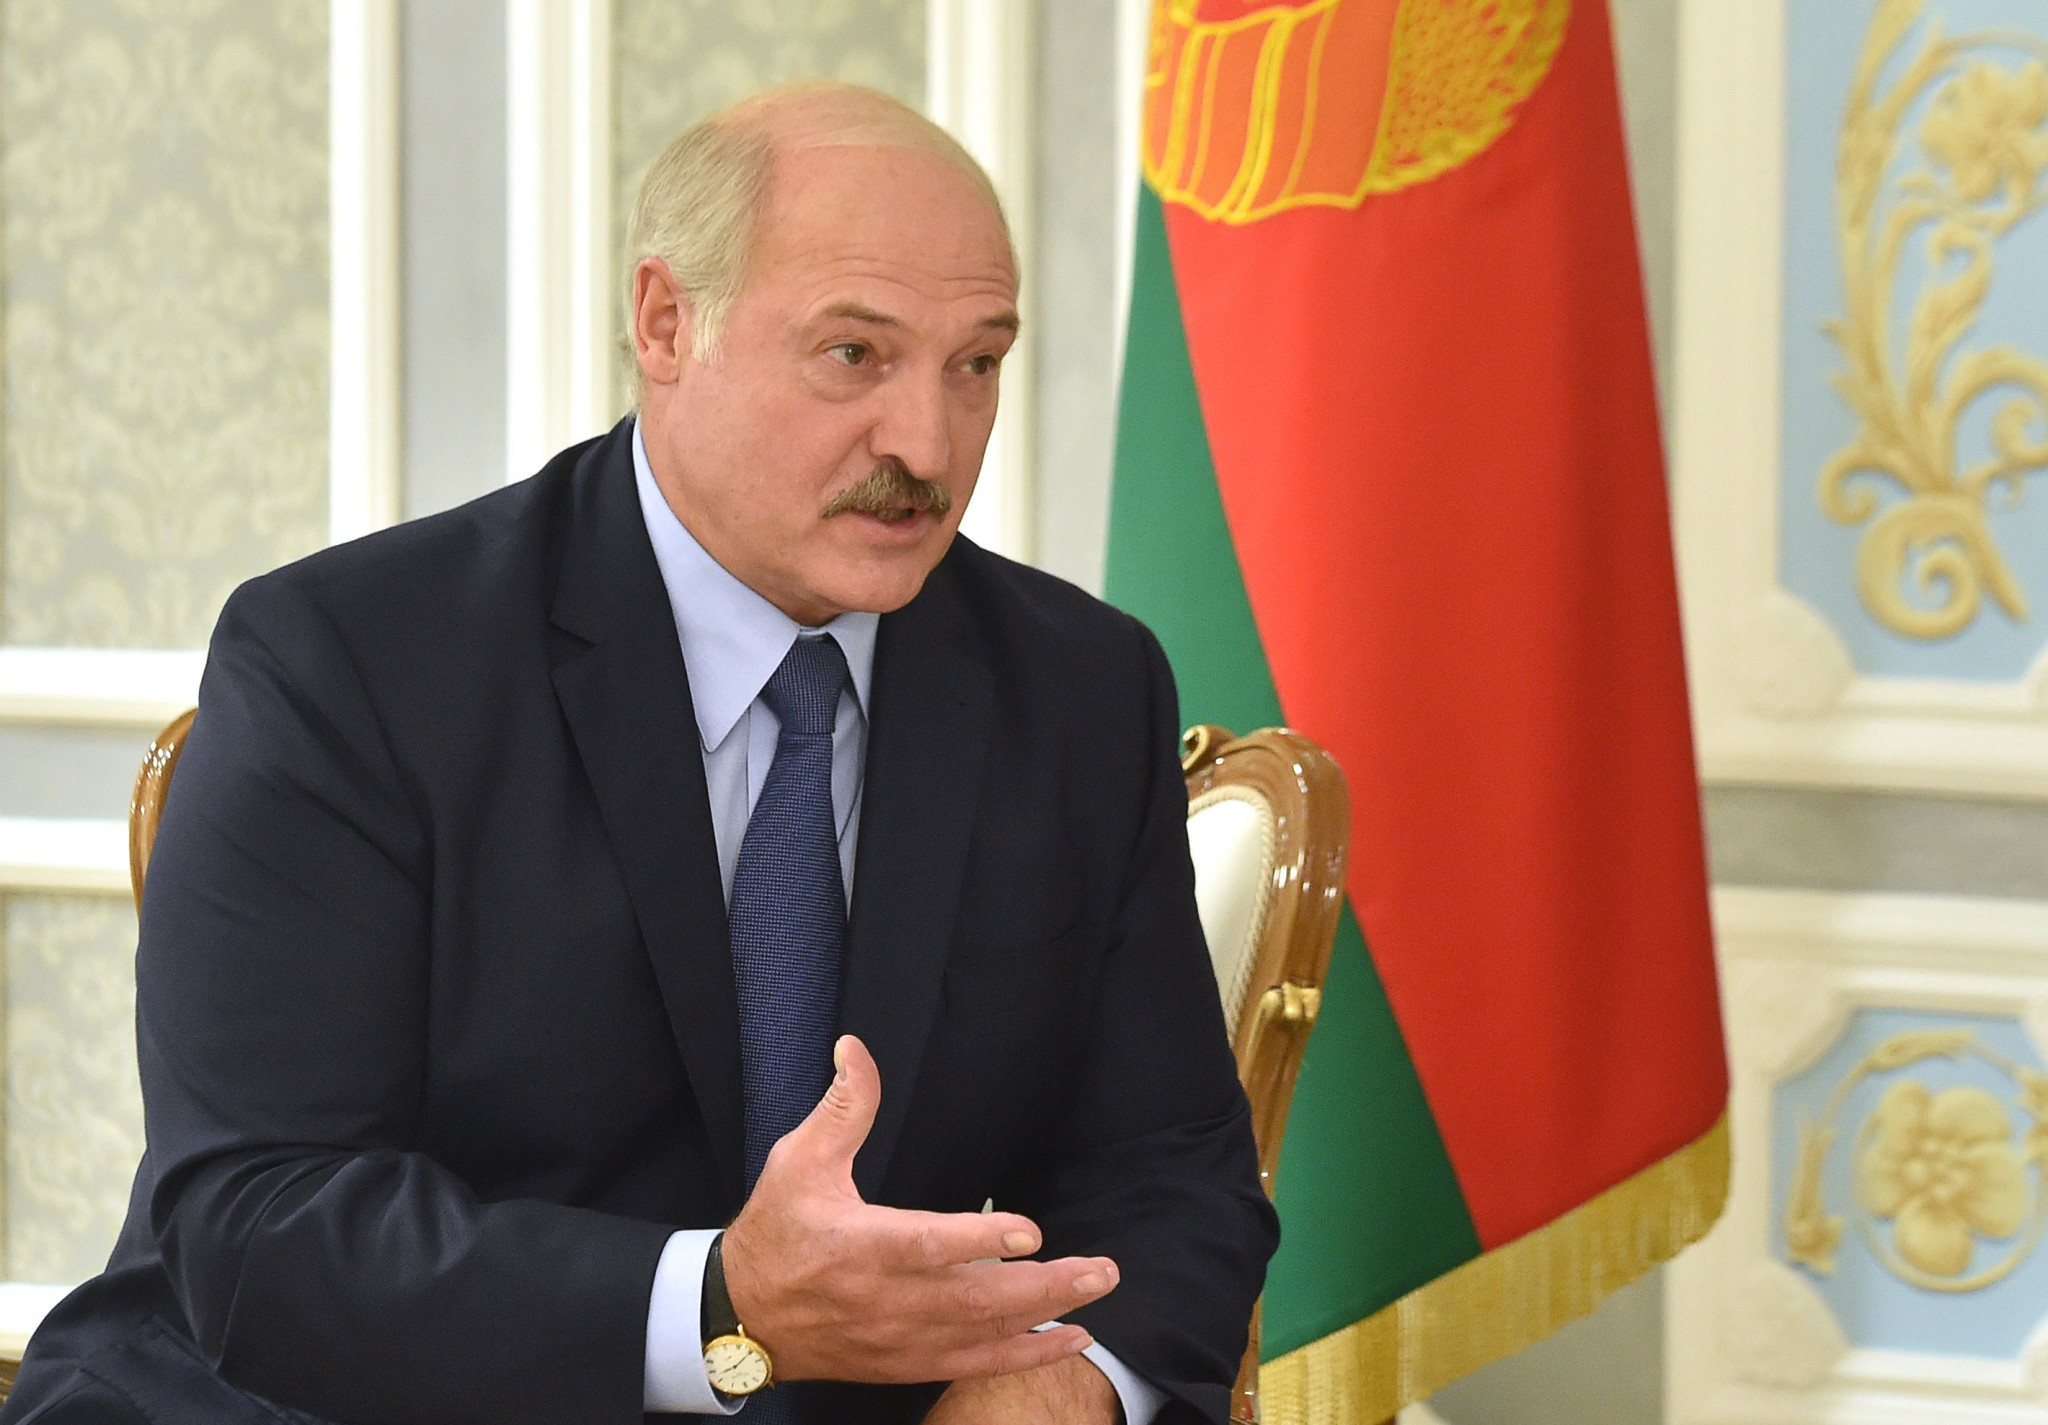 Belarus President targets co-hosting Olympics with Russia or Ukraine